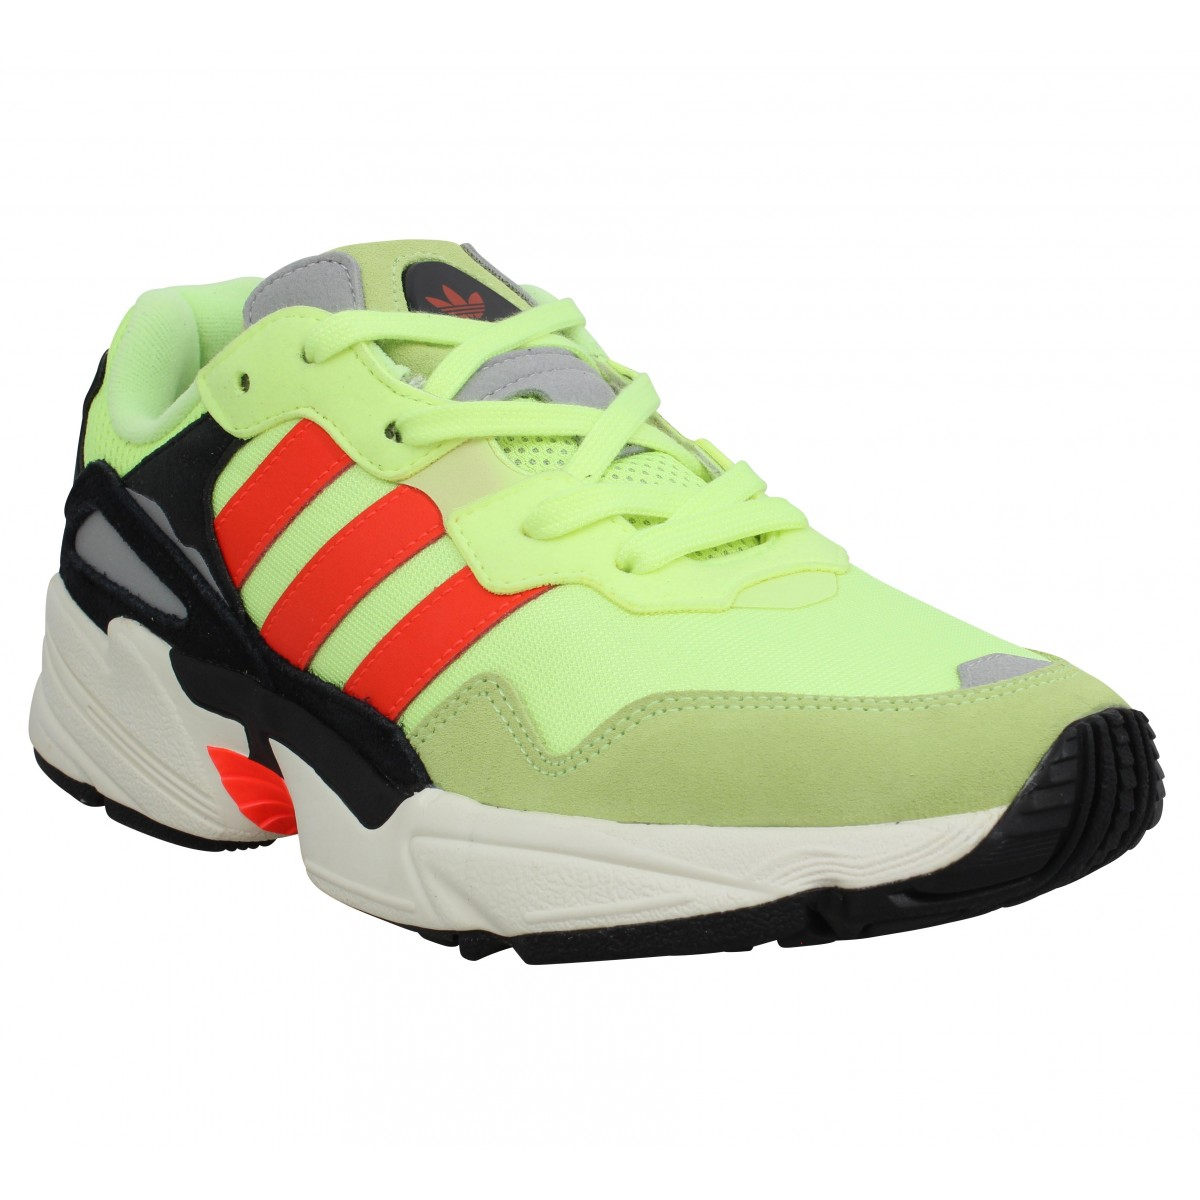 Adidas Homme Yung 96 Toile -40-jaune